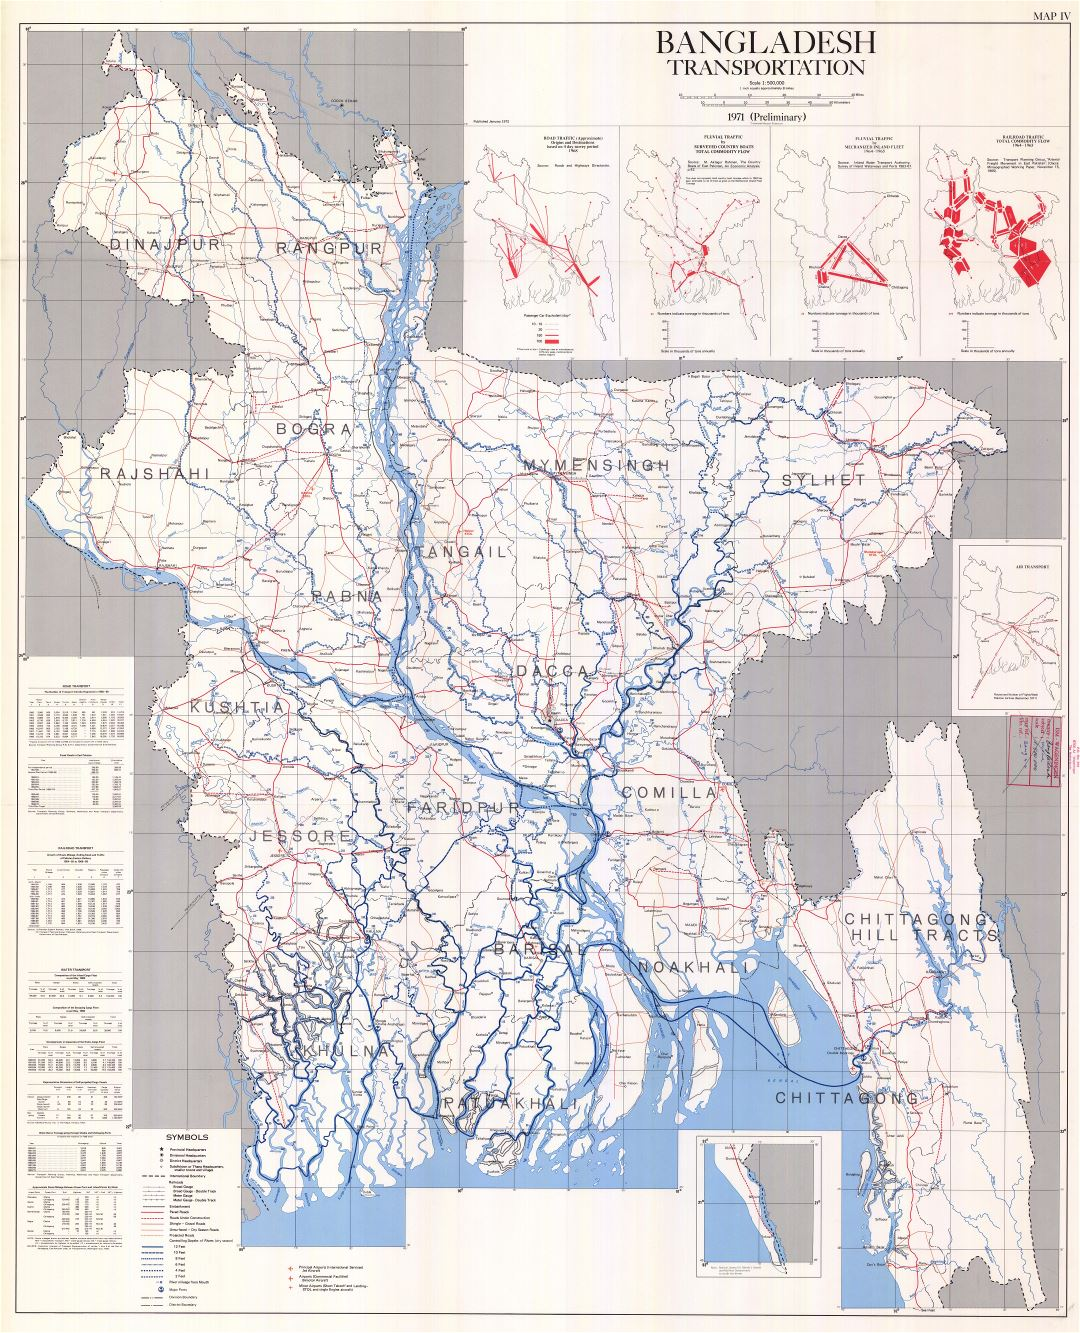 Large scale detailed transportation map of Bangladesh